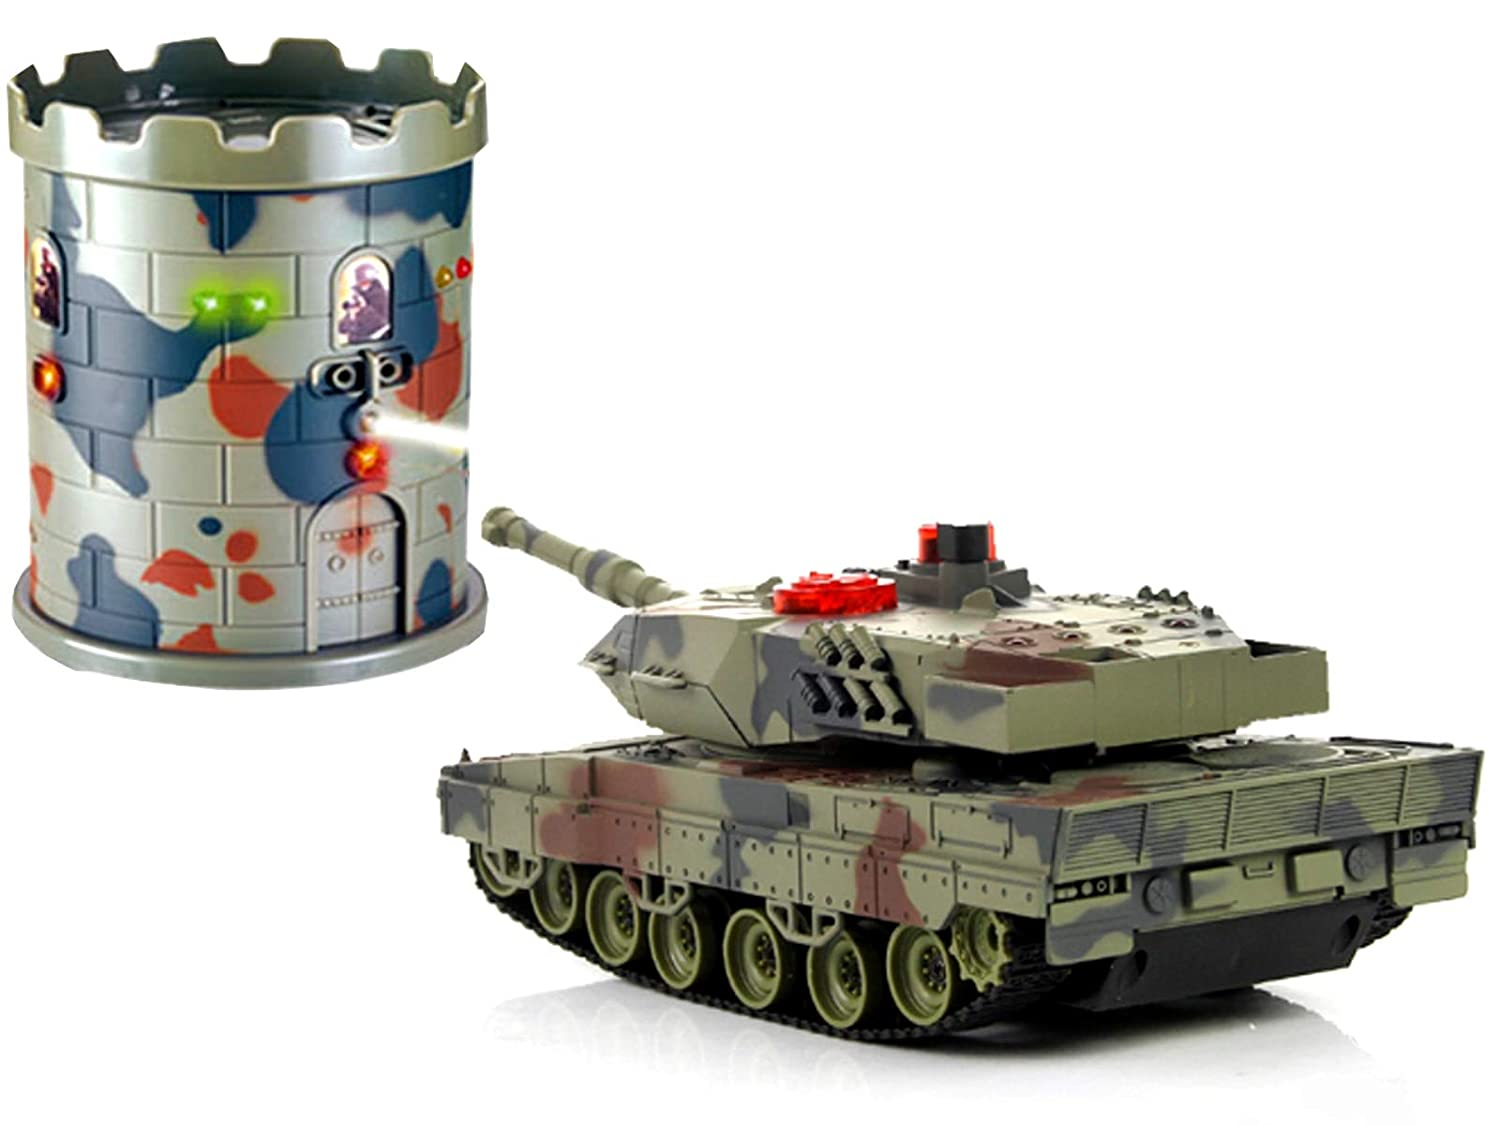 Top 9 Best Remote Control Tanks Battle Reviews in 2020 2